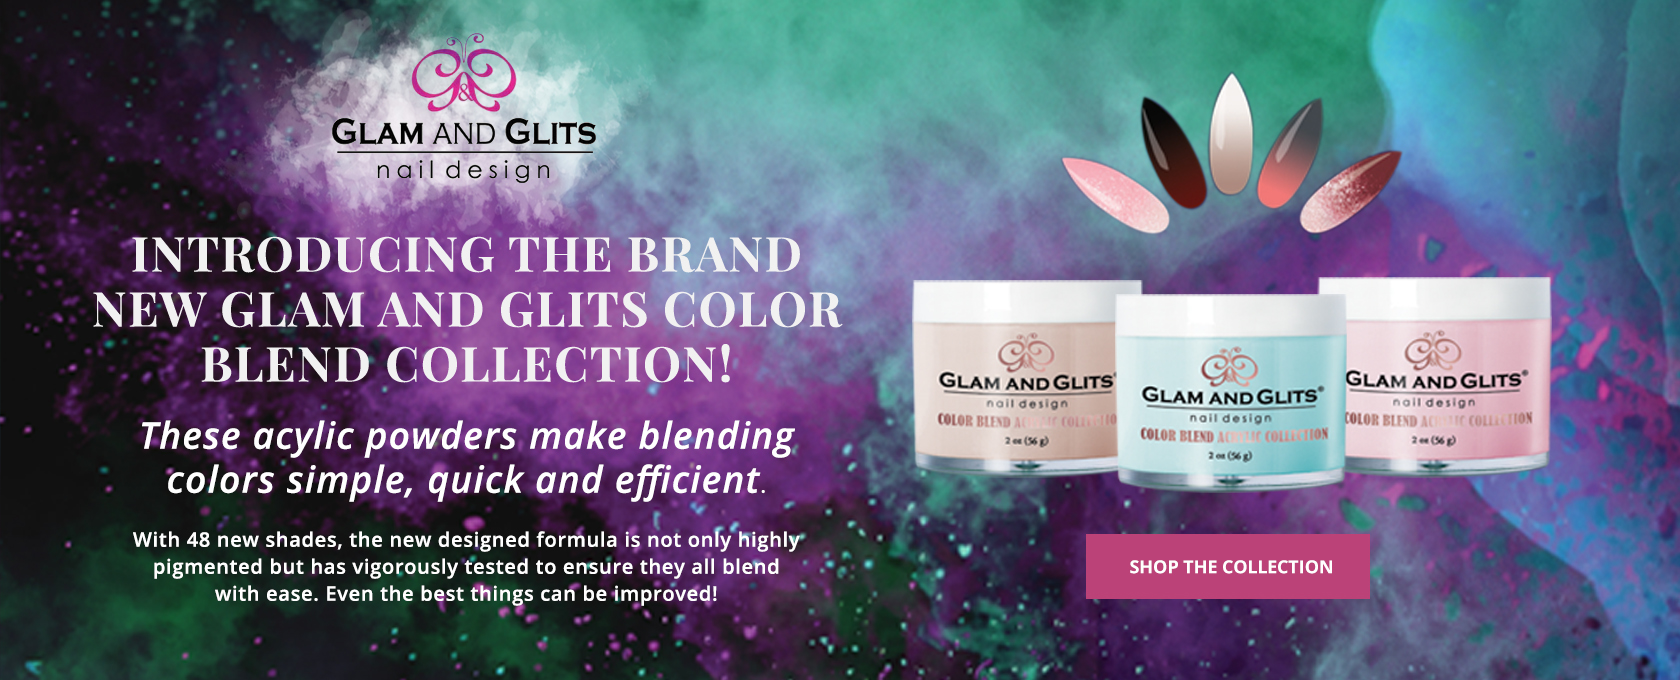 Glam and Glits Blending